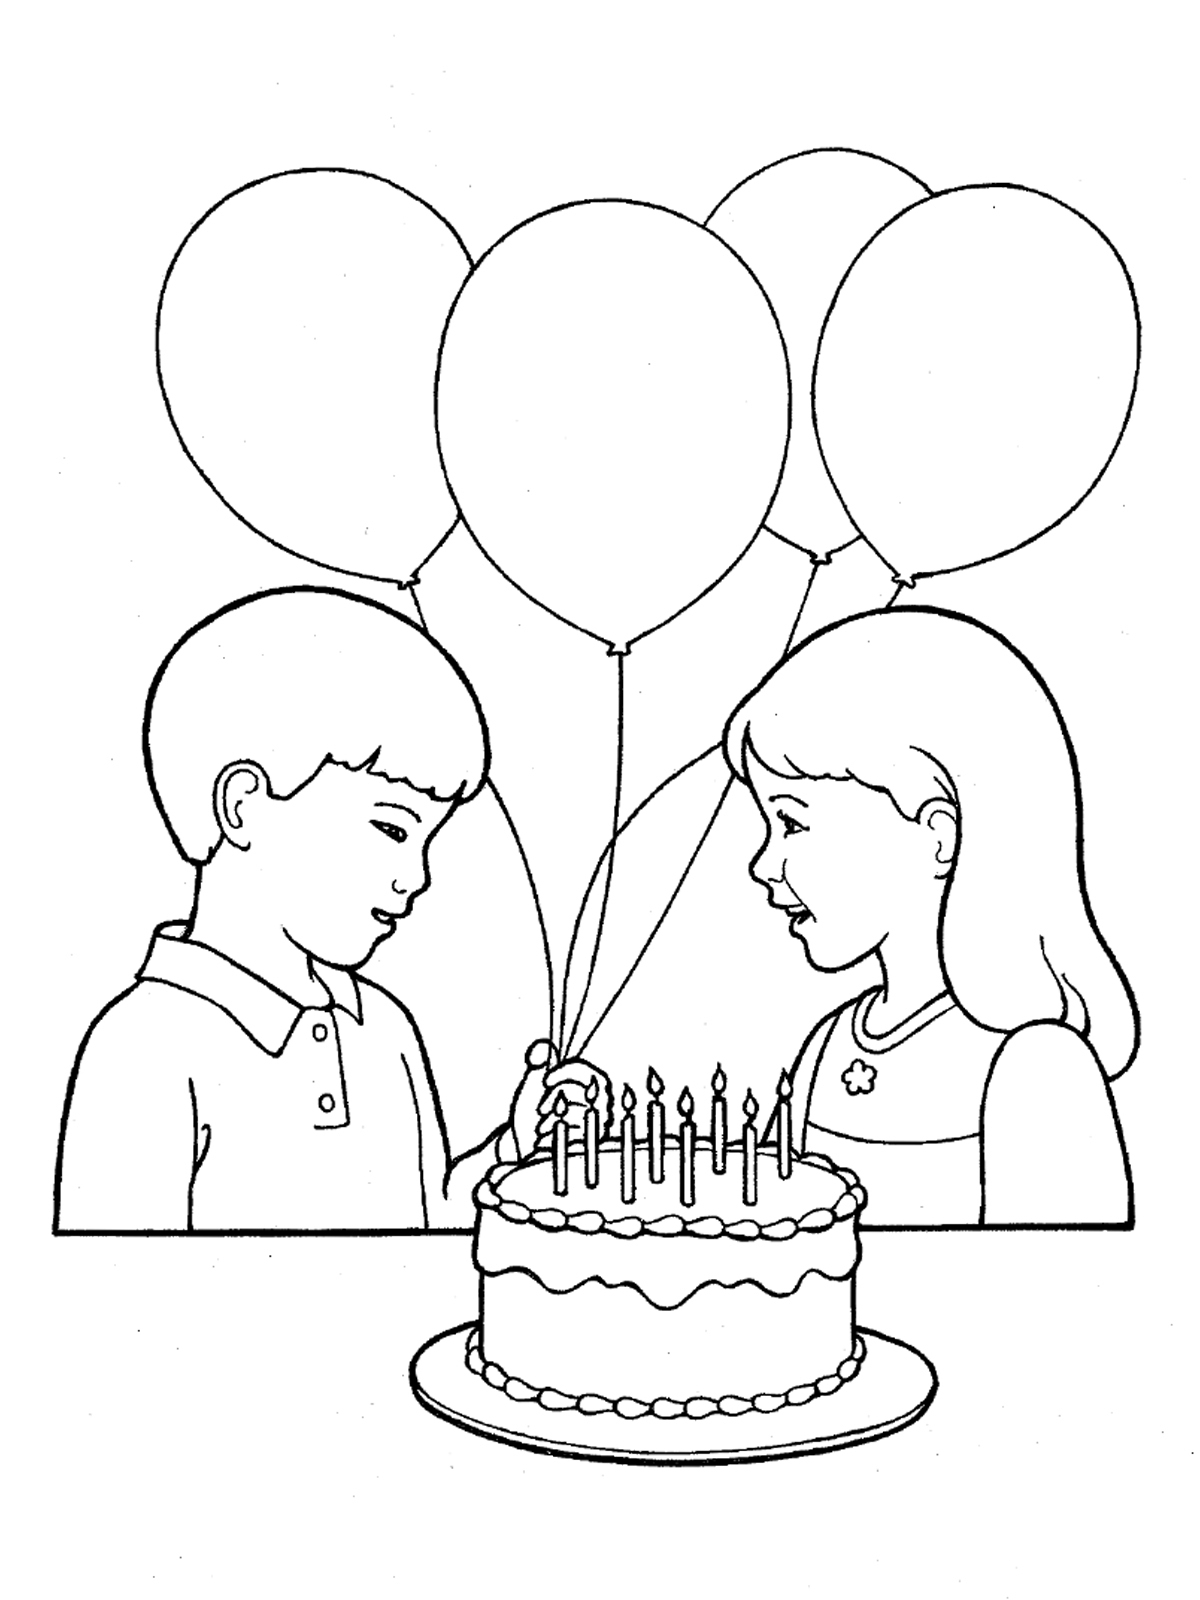 birthday party images for drawing ; drawing-pictures-of-birthday-party-drawing-pictures-of-birthday-party-primary-children-birthday